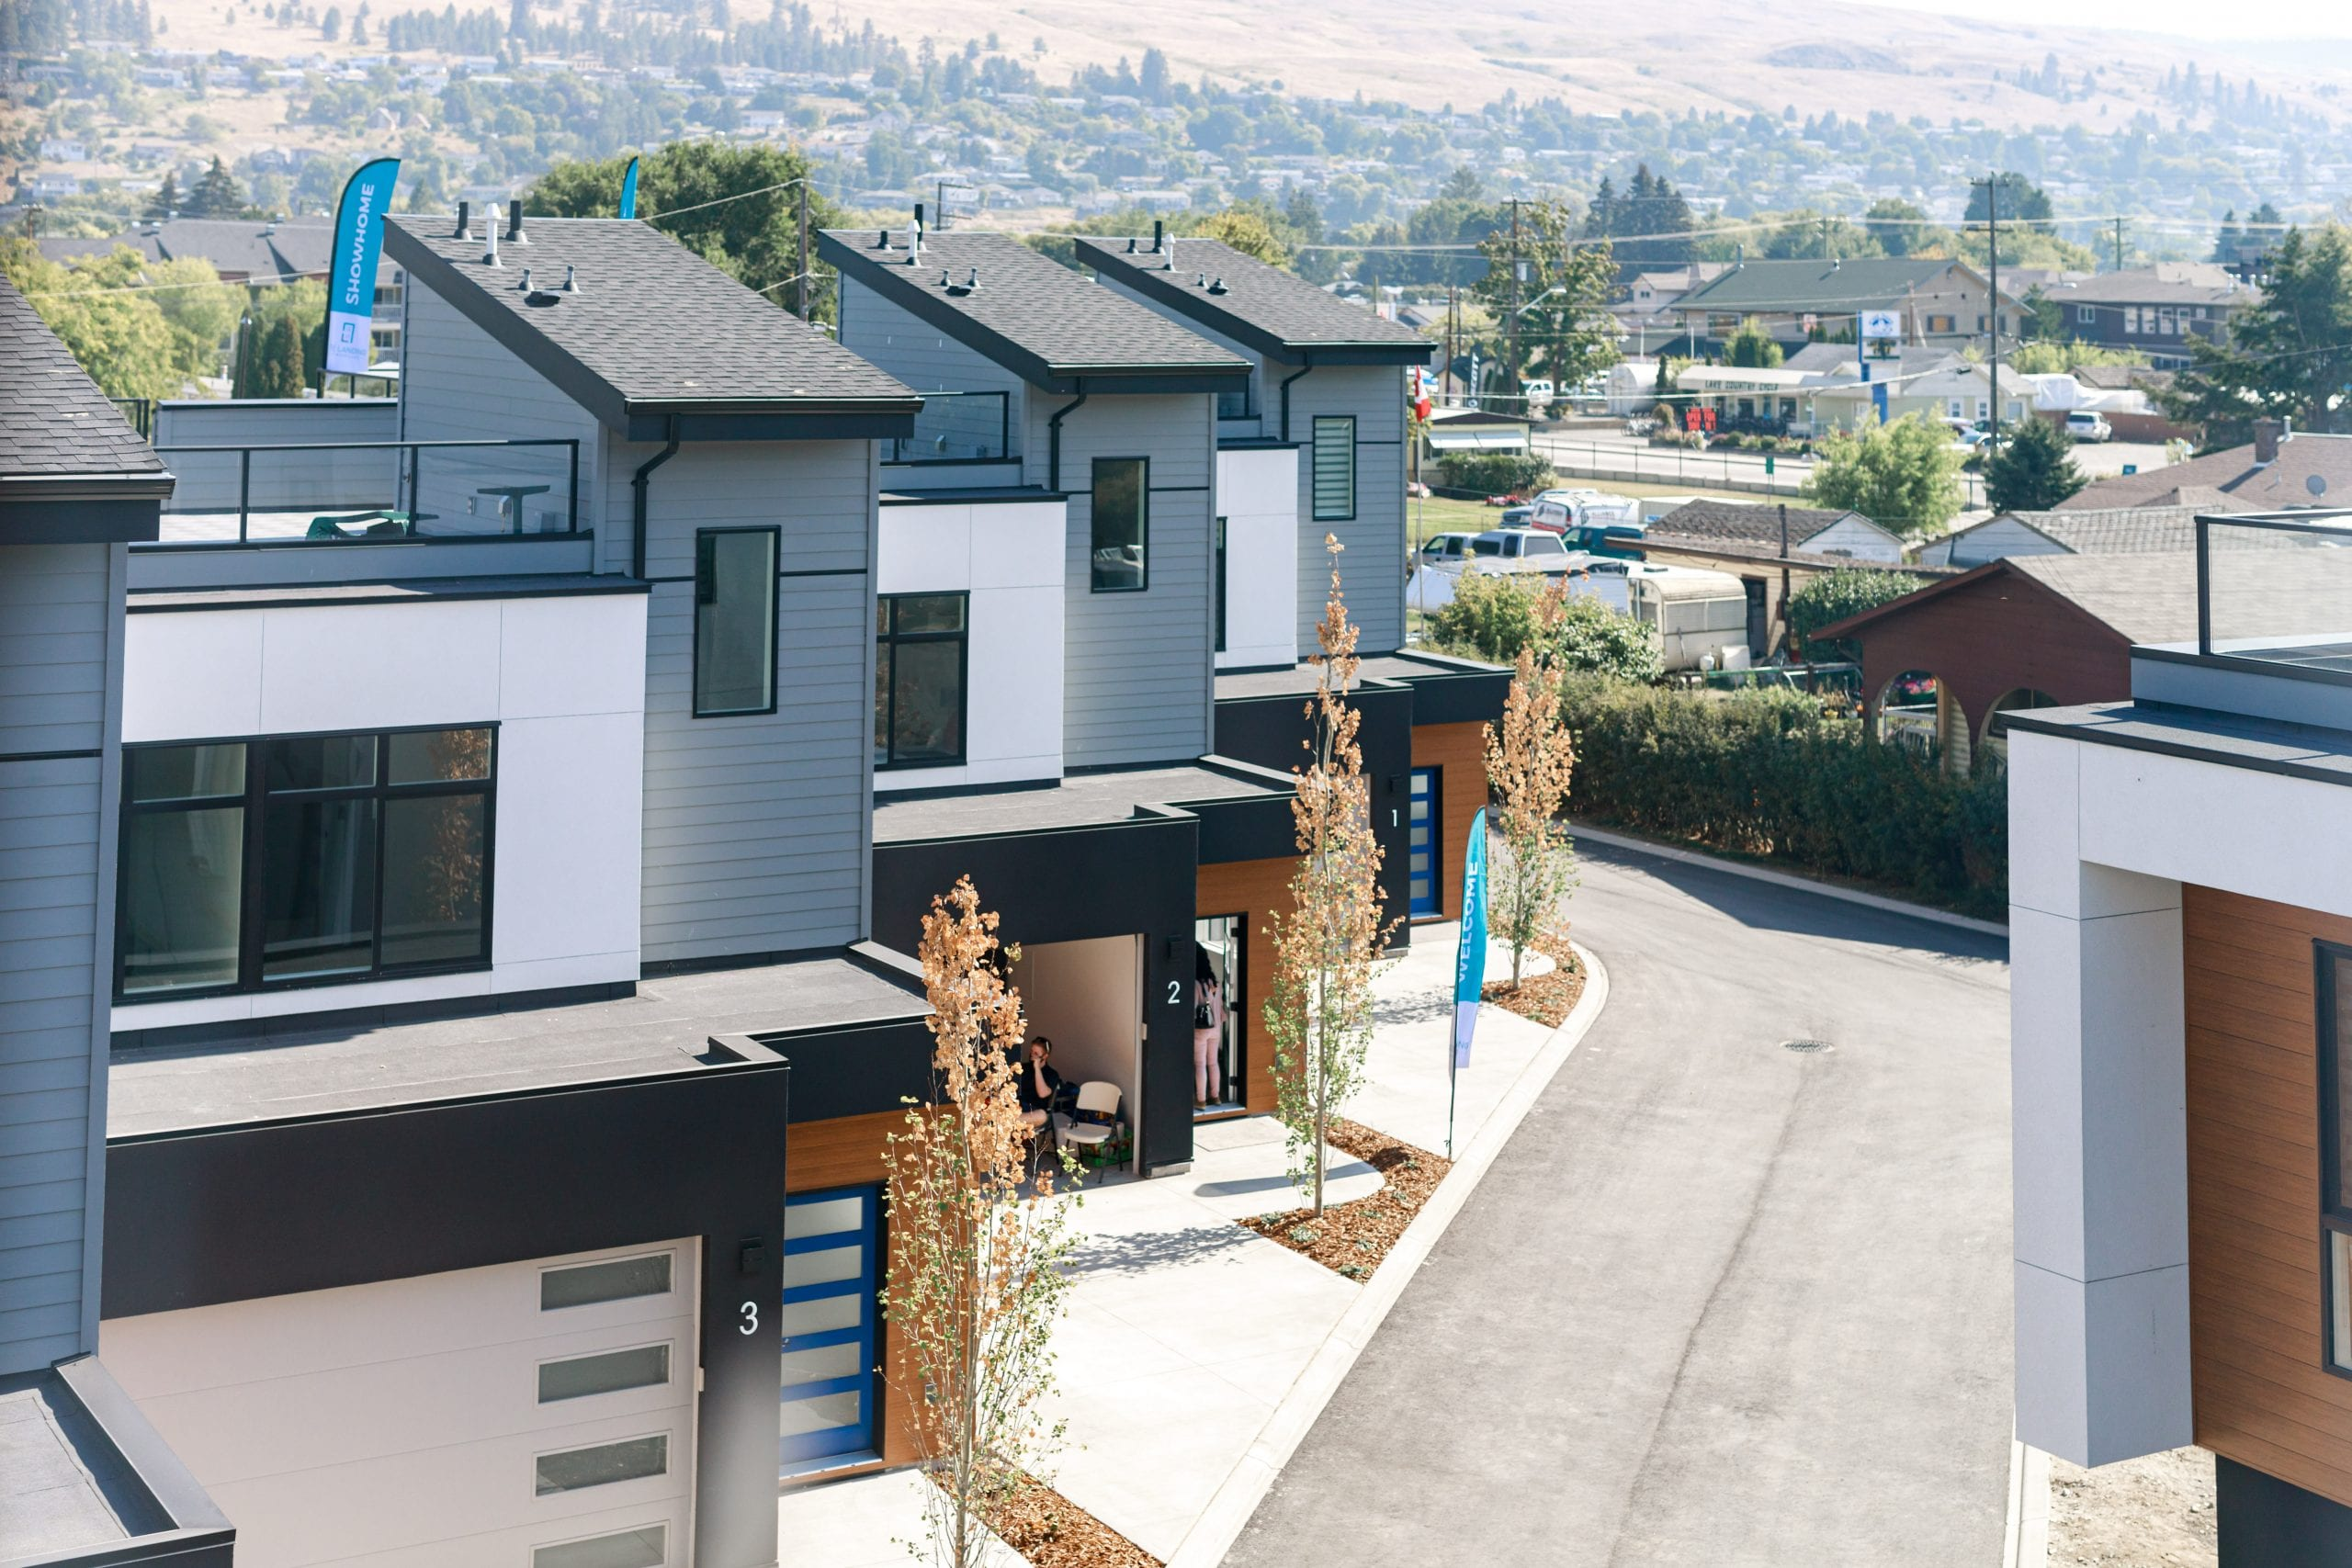 Exterior townhouse, lake country, modern home design, mixed exterior